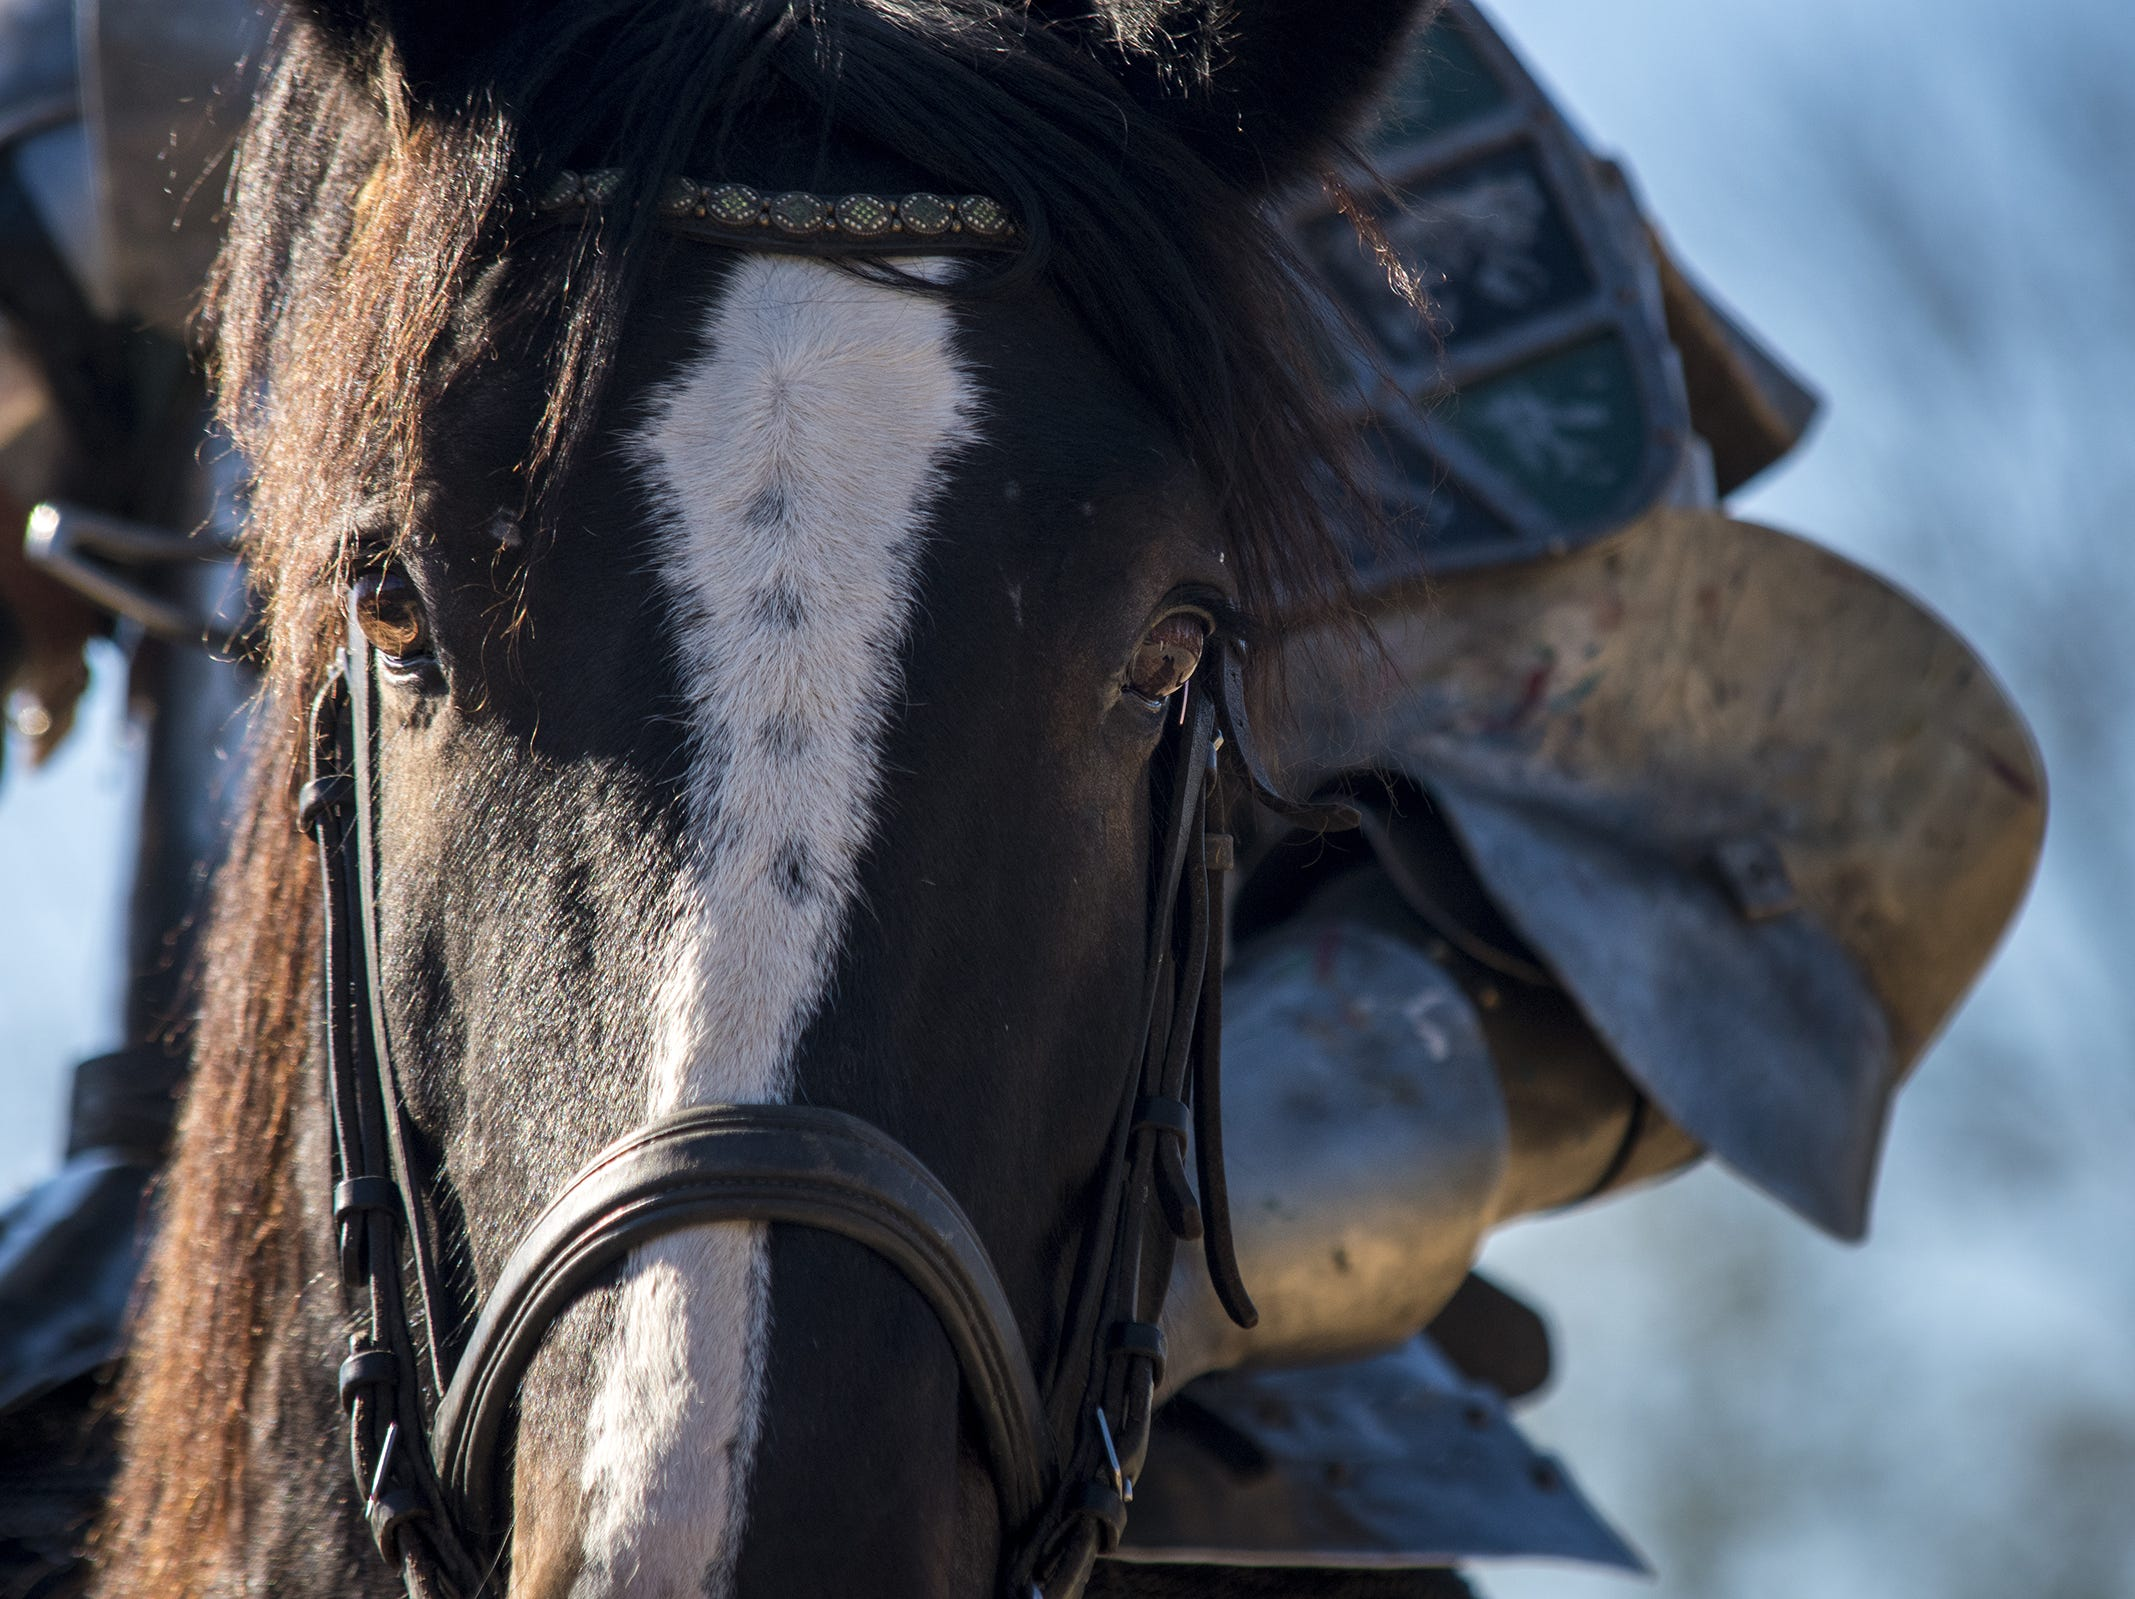 Sir Robert rides through the lists during the live jousting show at the Ohio Renaissance Festival Sunday, October 21, 2018 in Waynesville, Ohio.